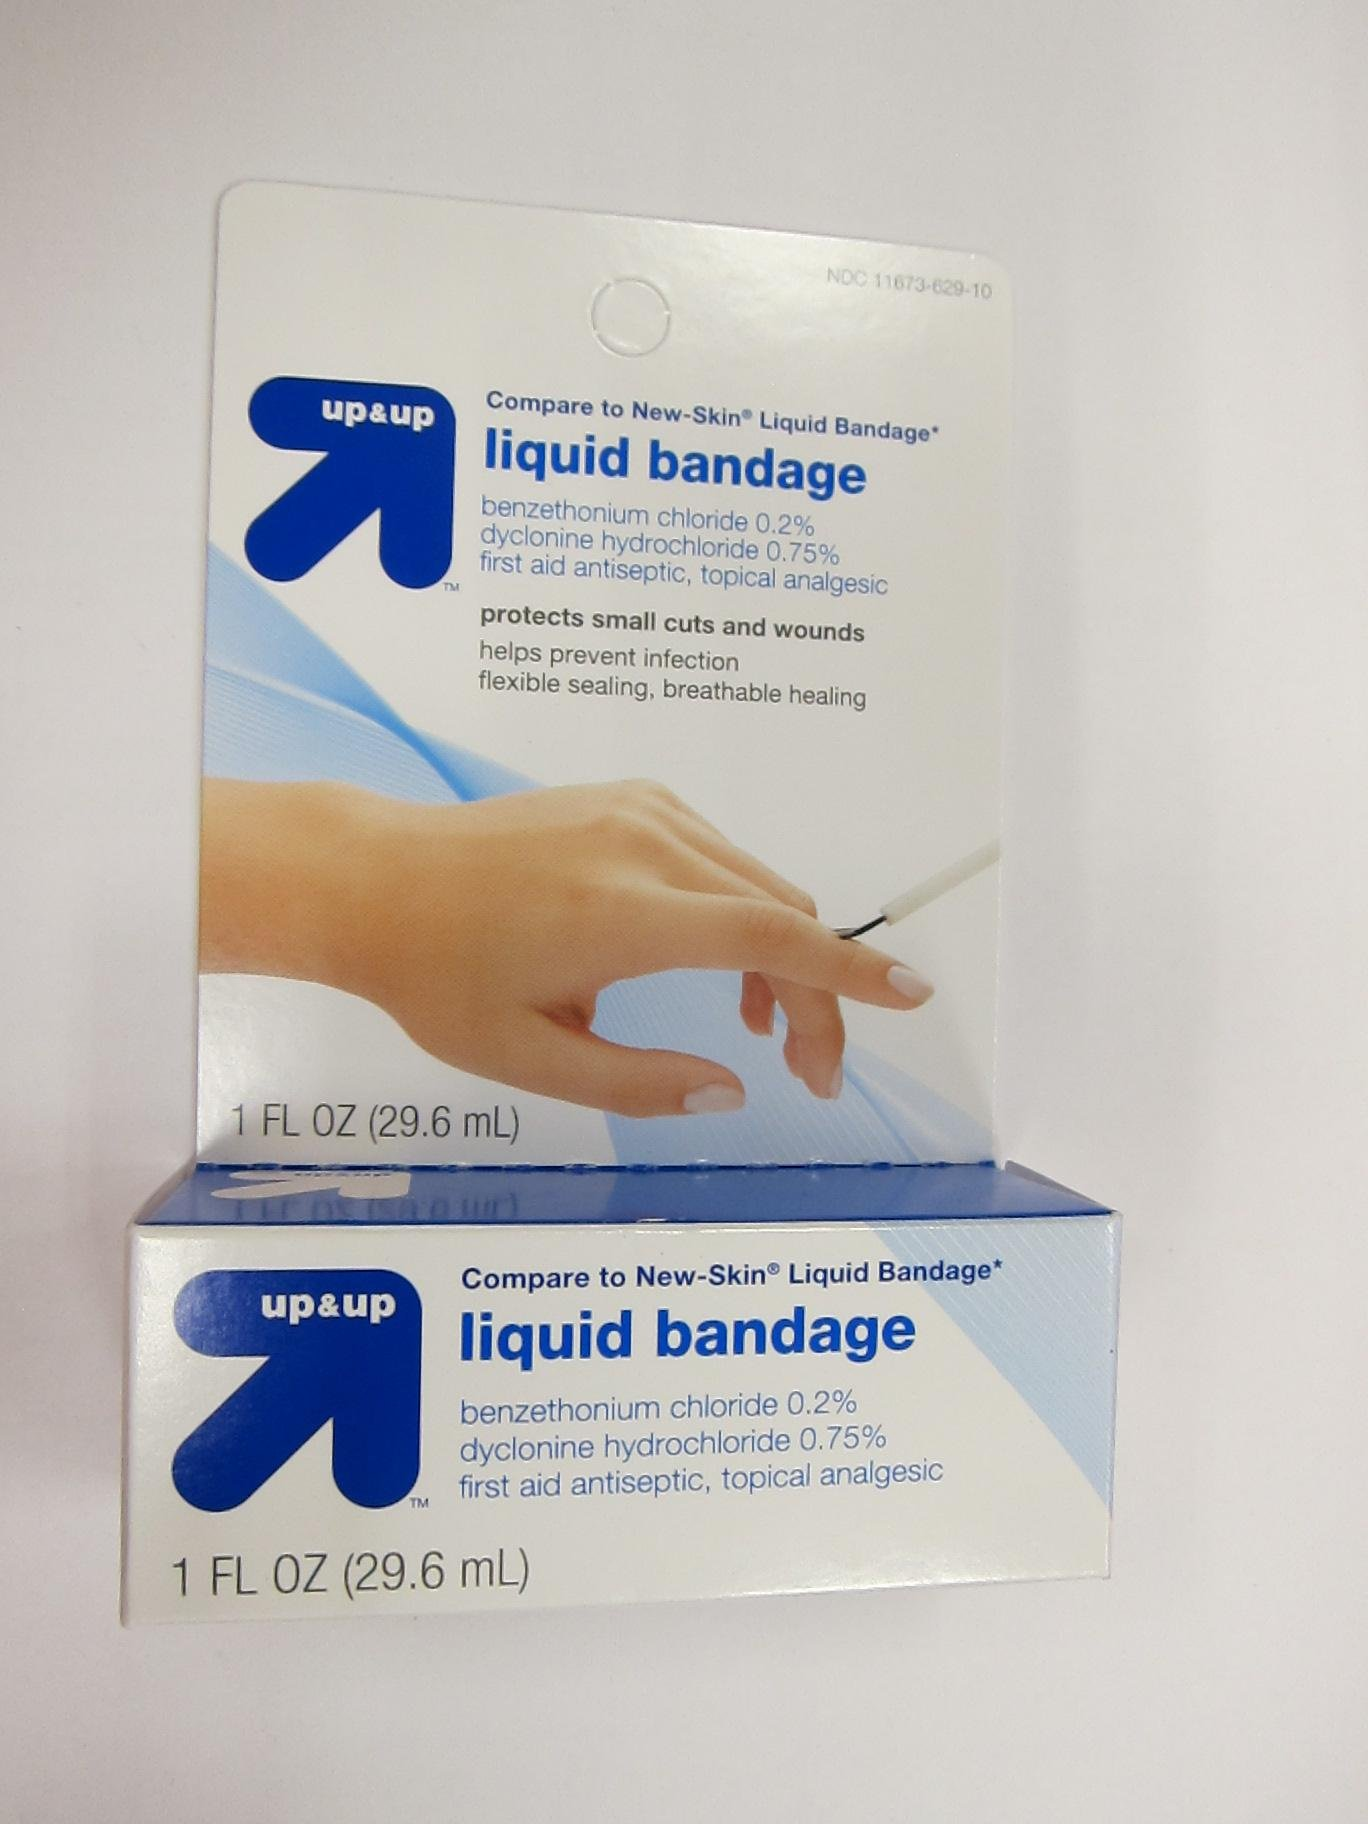 Up & Up Liquid Bandage, 1 fl oz (Compare New-Skin Liquid Bandage) (Pack of 2)